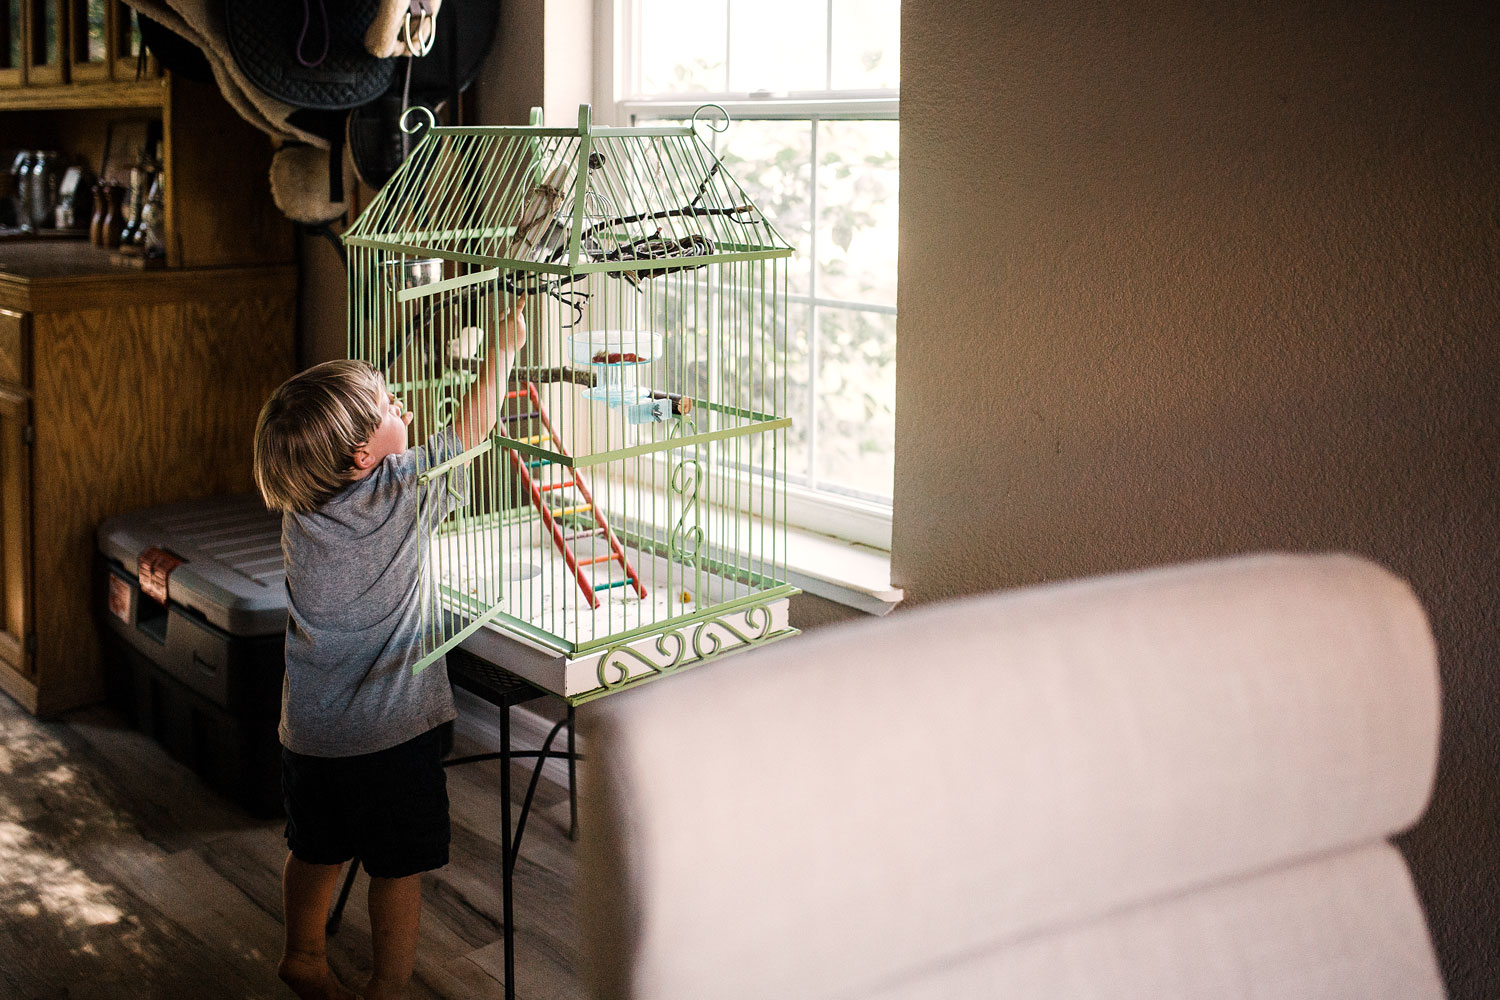 A toddler reaches for a pet bird during an in-home lifestyle family photography session in Sacramento, California.